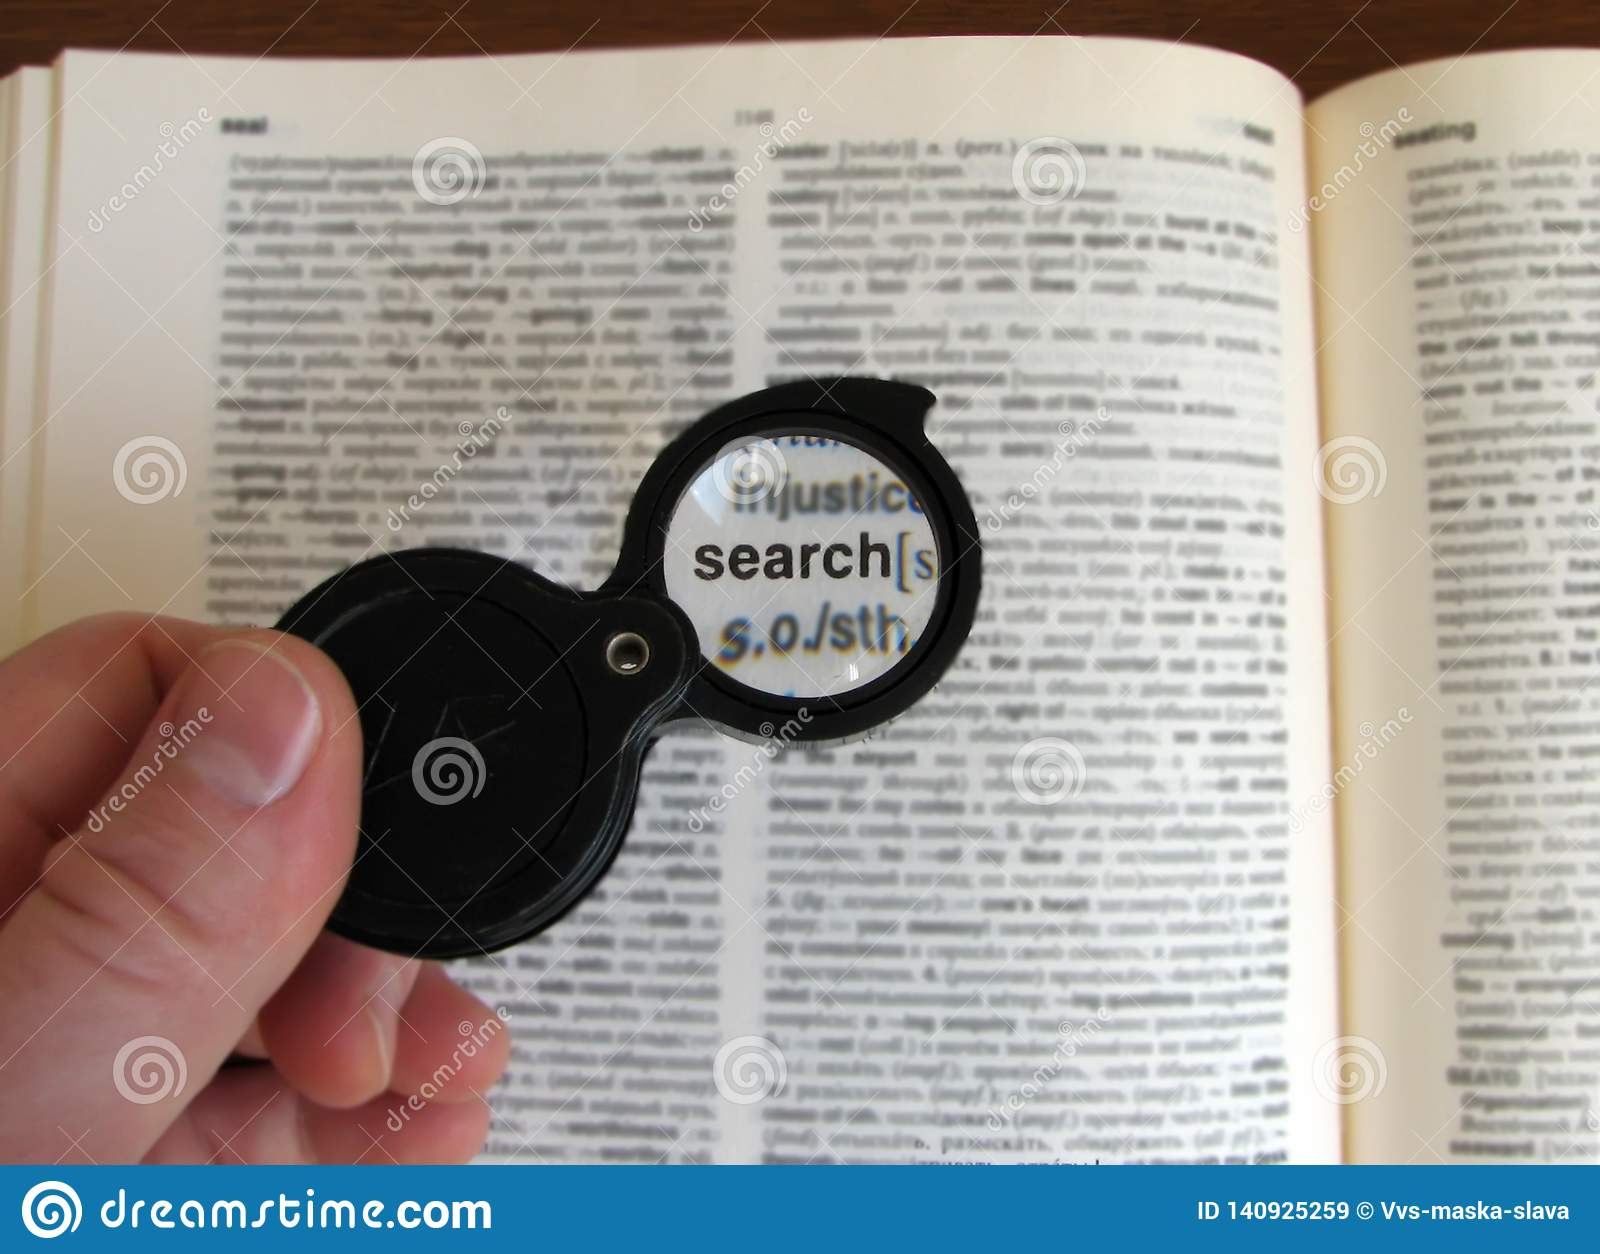 Your search tool